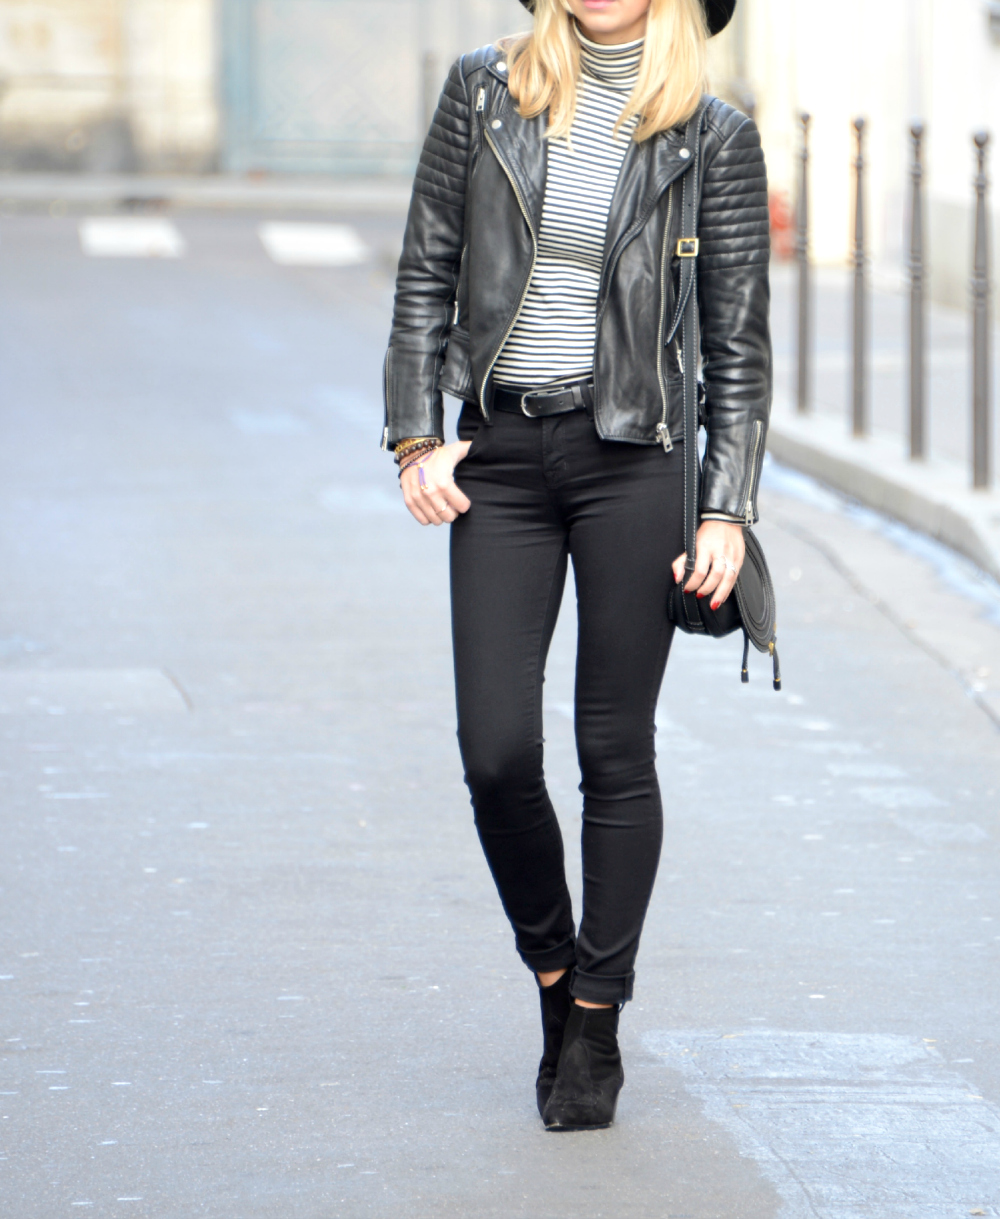 Arianna Trapani wearing Ash boots, Allsaints leather jacket, Jbrand skinny jeans, petit Bateau stripe top, Topshop floppy fedora hat. Street style look.